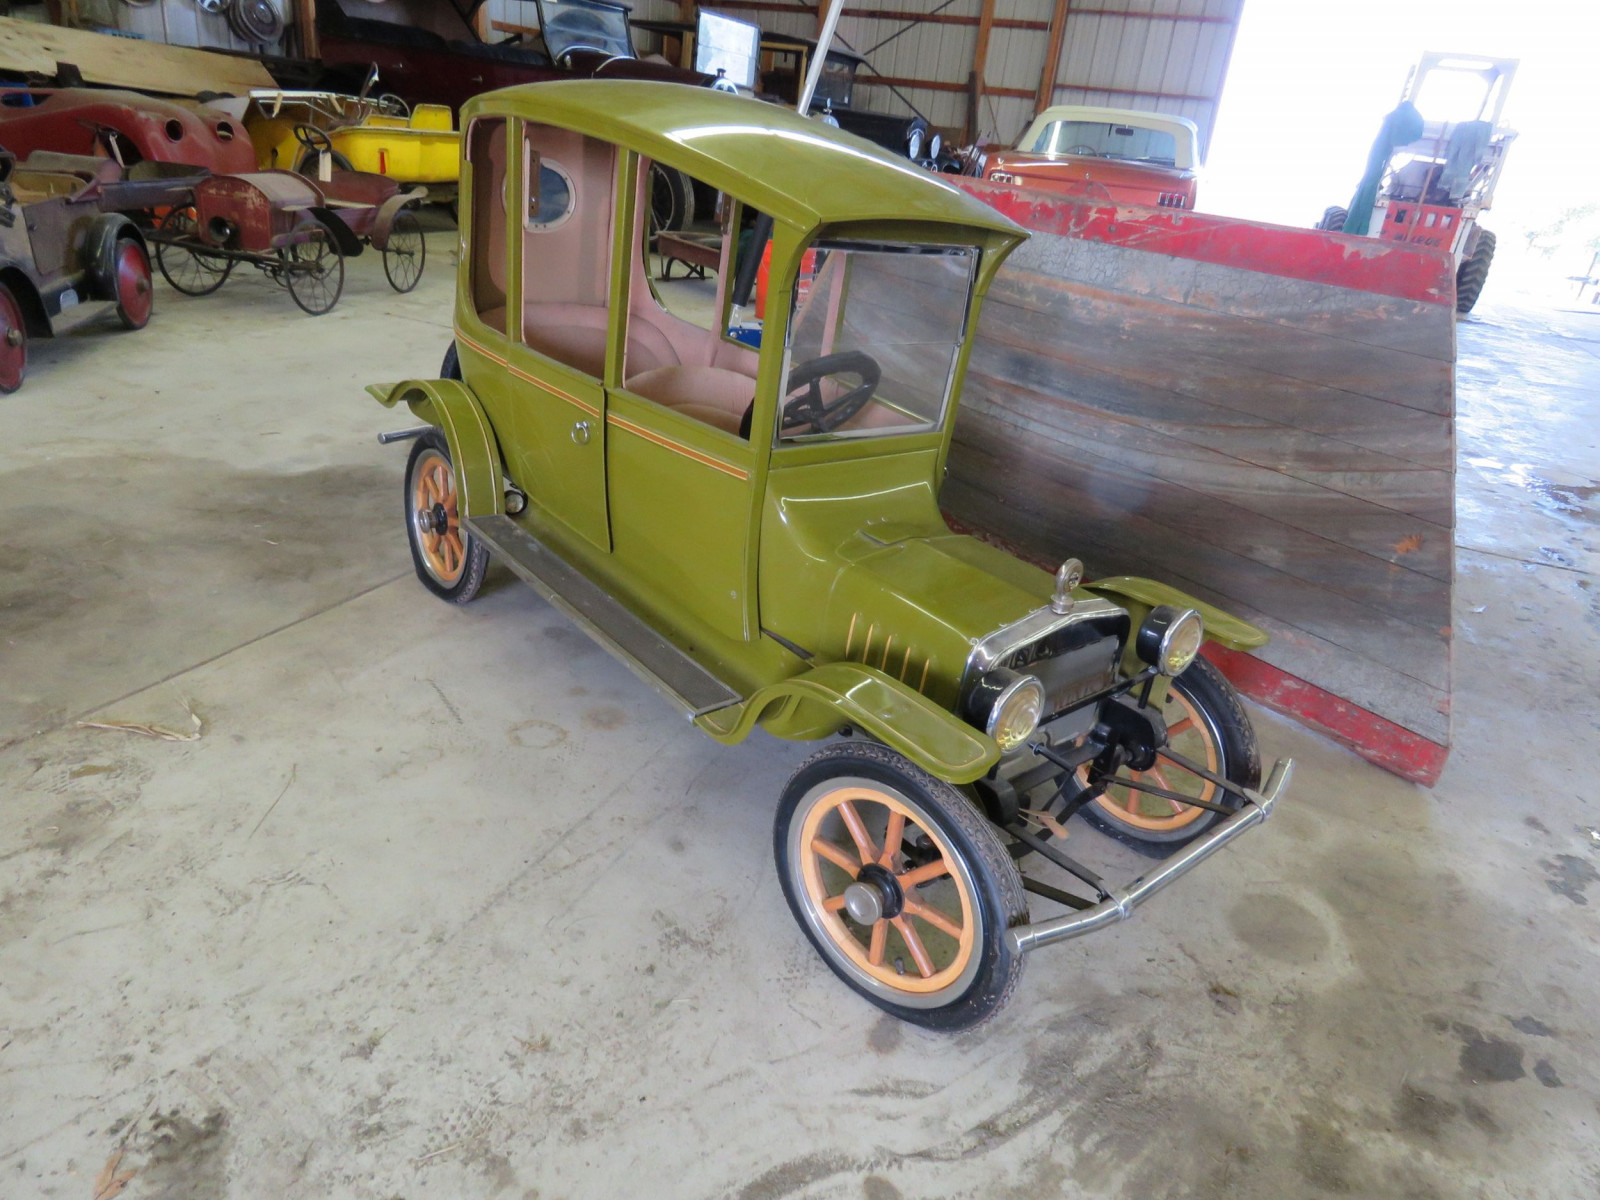 Ford Model T Center-Door Pedal Car - Image 8